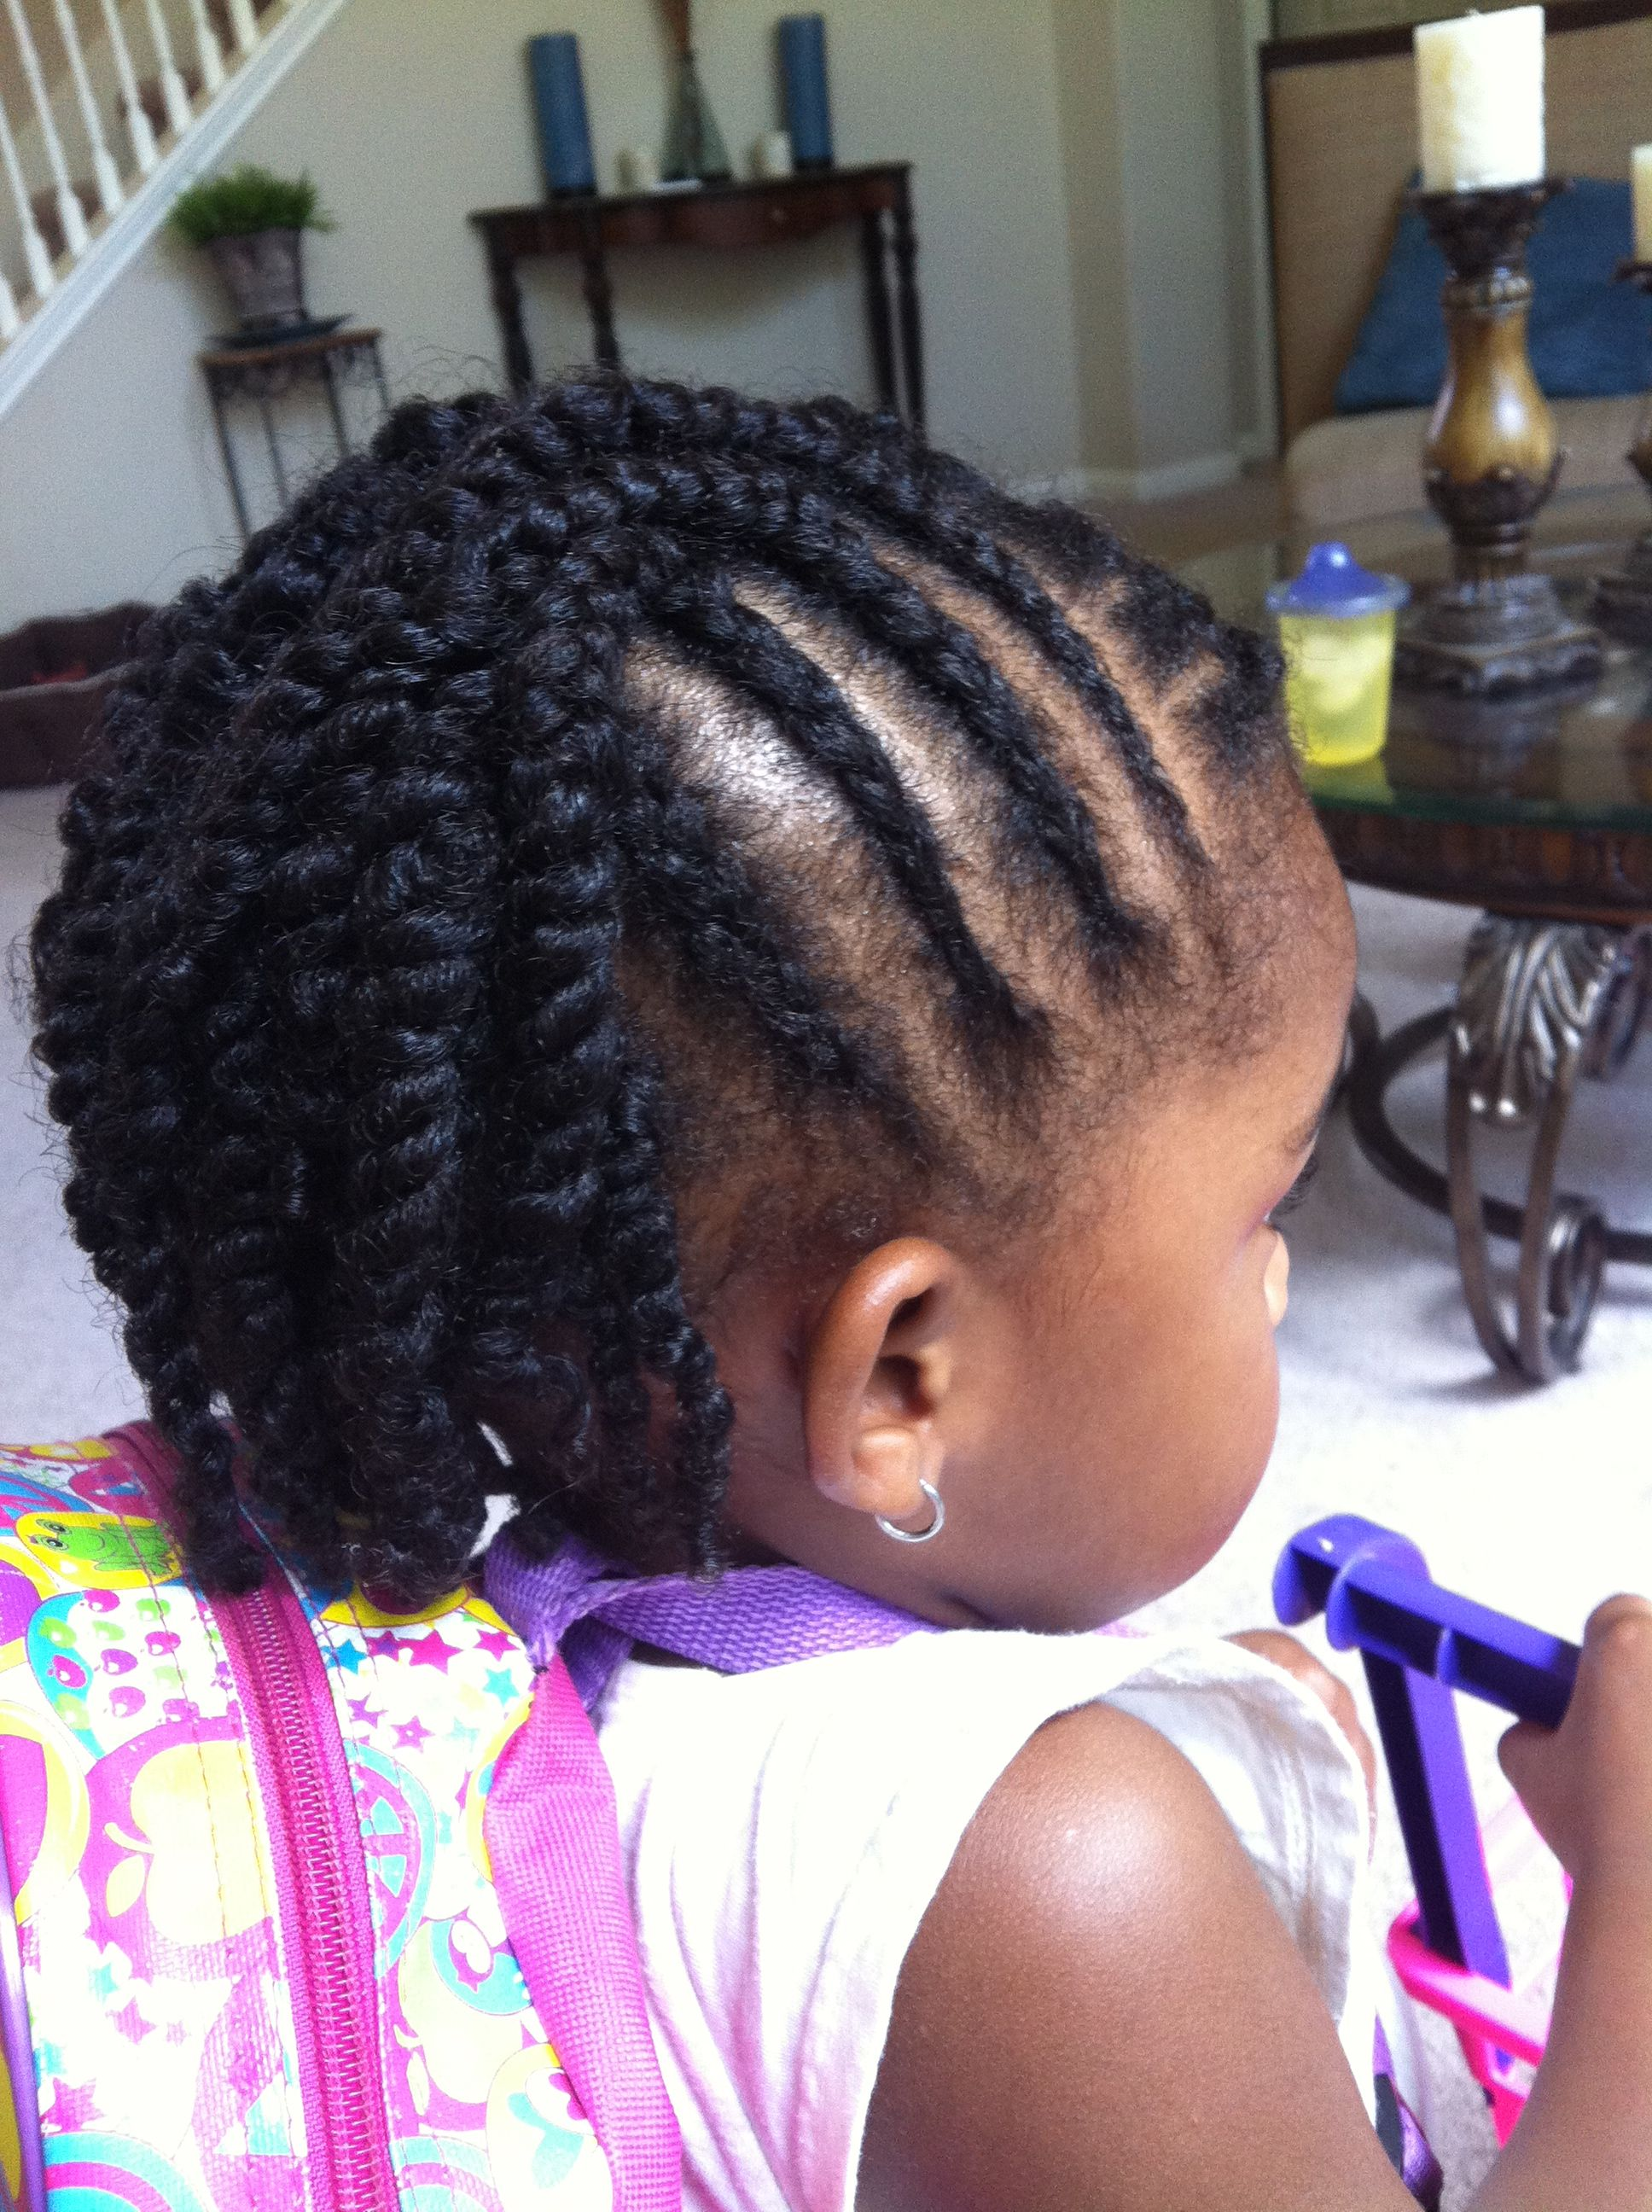 Admirable 1000 Images About Brodiee39S Hairstyle Ideas On Pinterest Hairstyles For Women Draintrainus